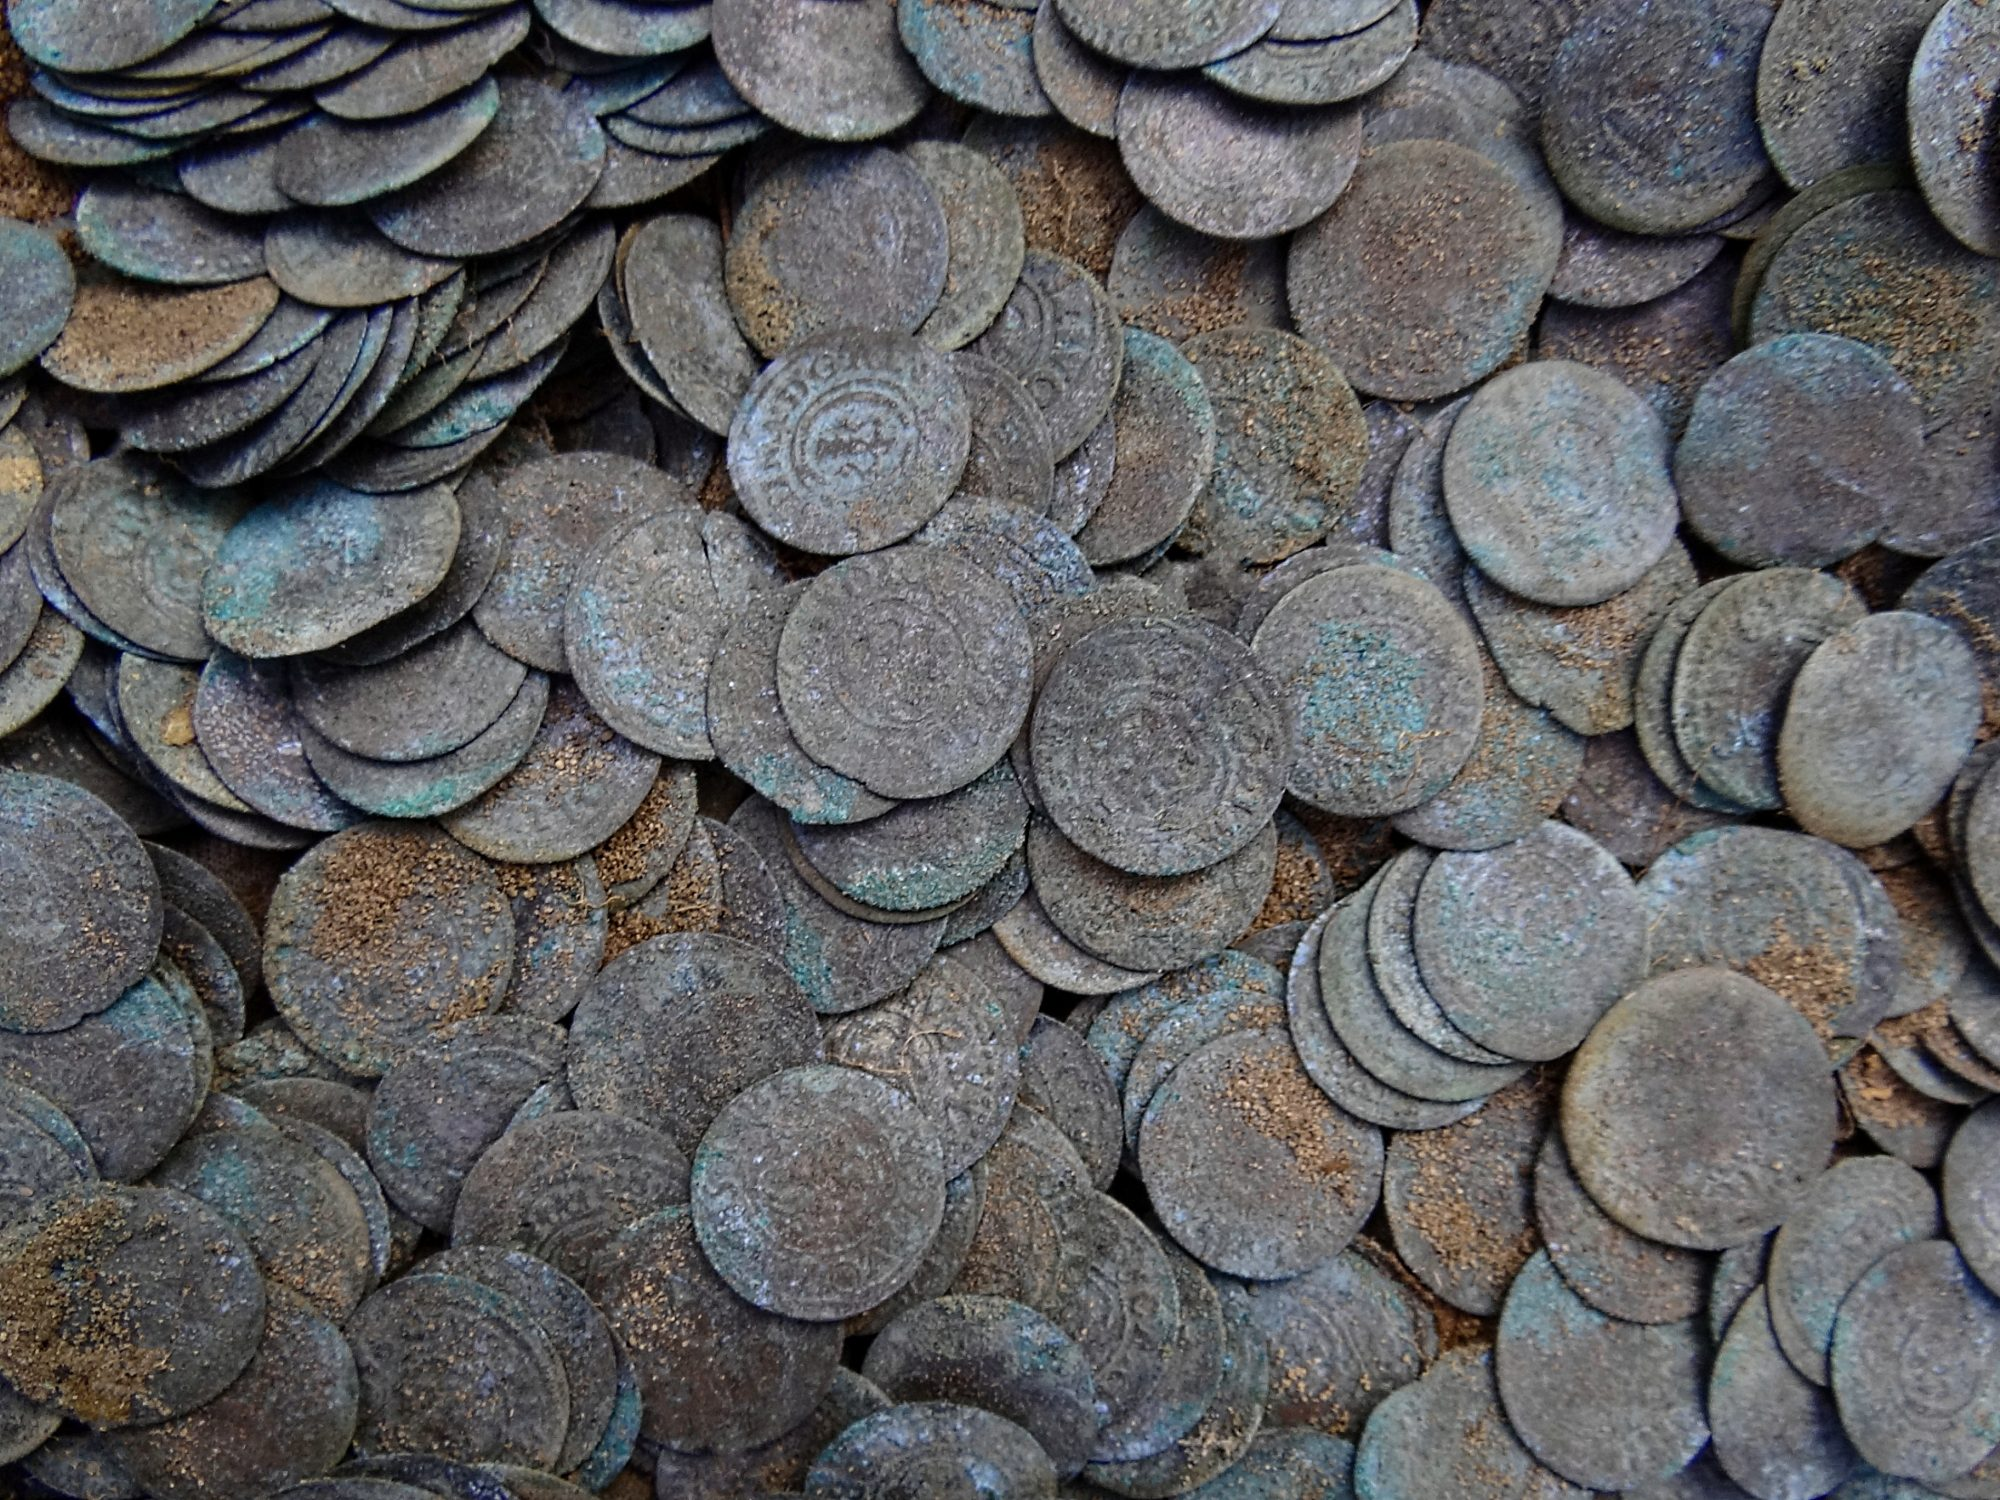 Silver Coins from 300-Year-Old Shipwreck Discovered in Wabasso Beach, Florida